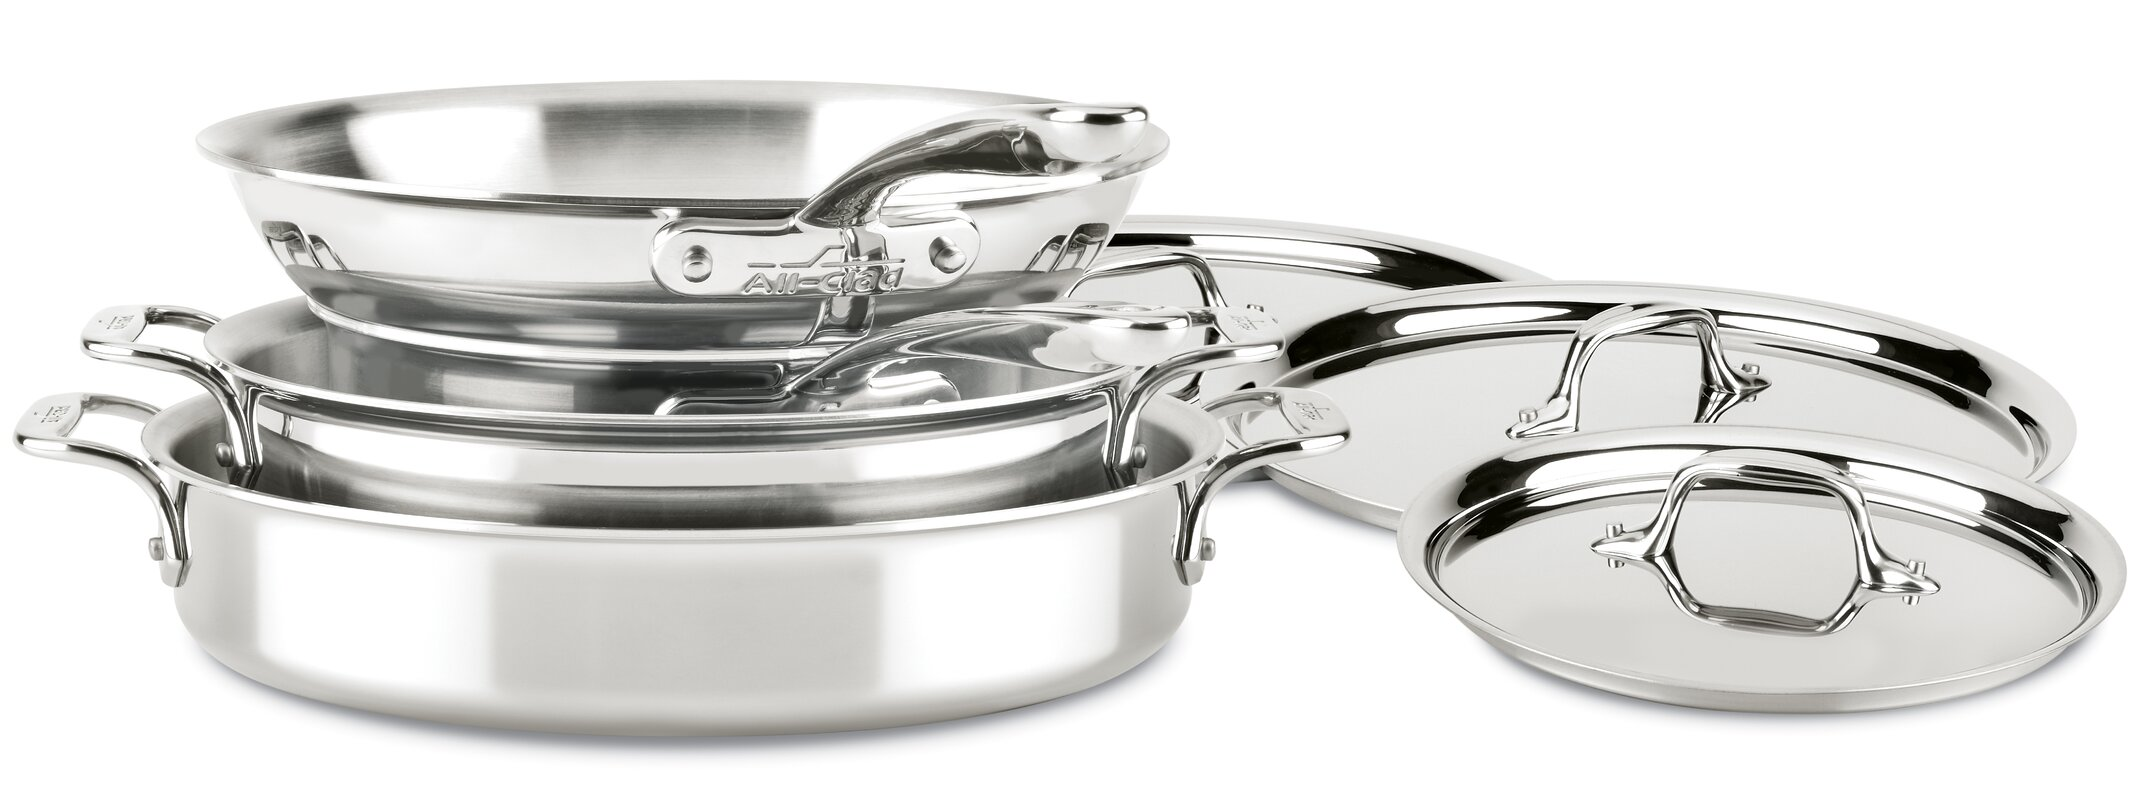 All-Clad D3 Compact 7 Piece Stainless Steel Cookware Set